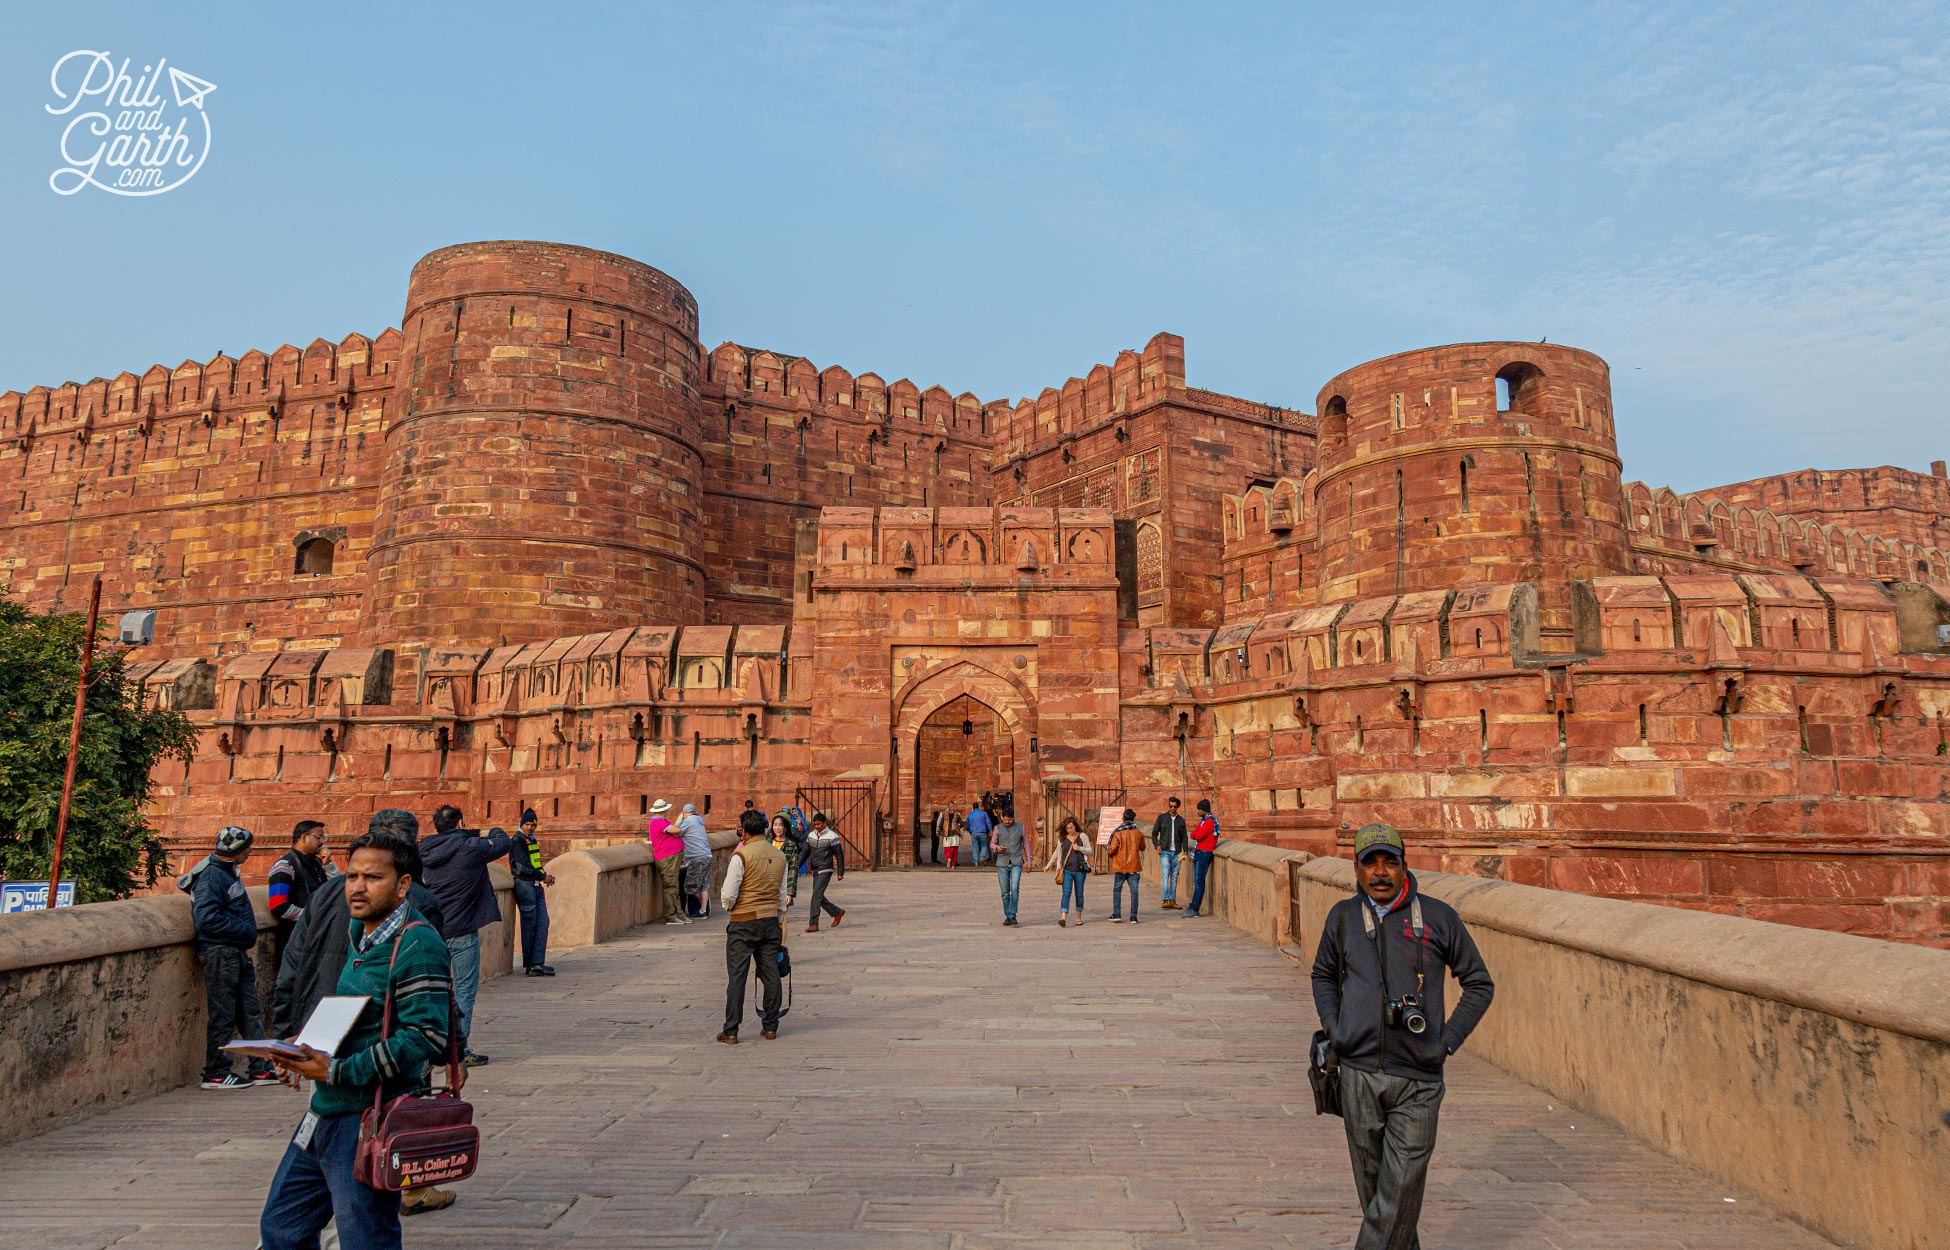 The colossal Agra Fort also known as Lal Qila or the Red Fort